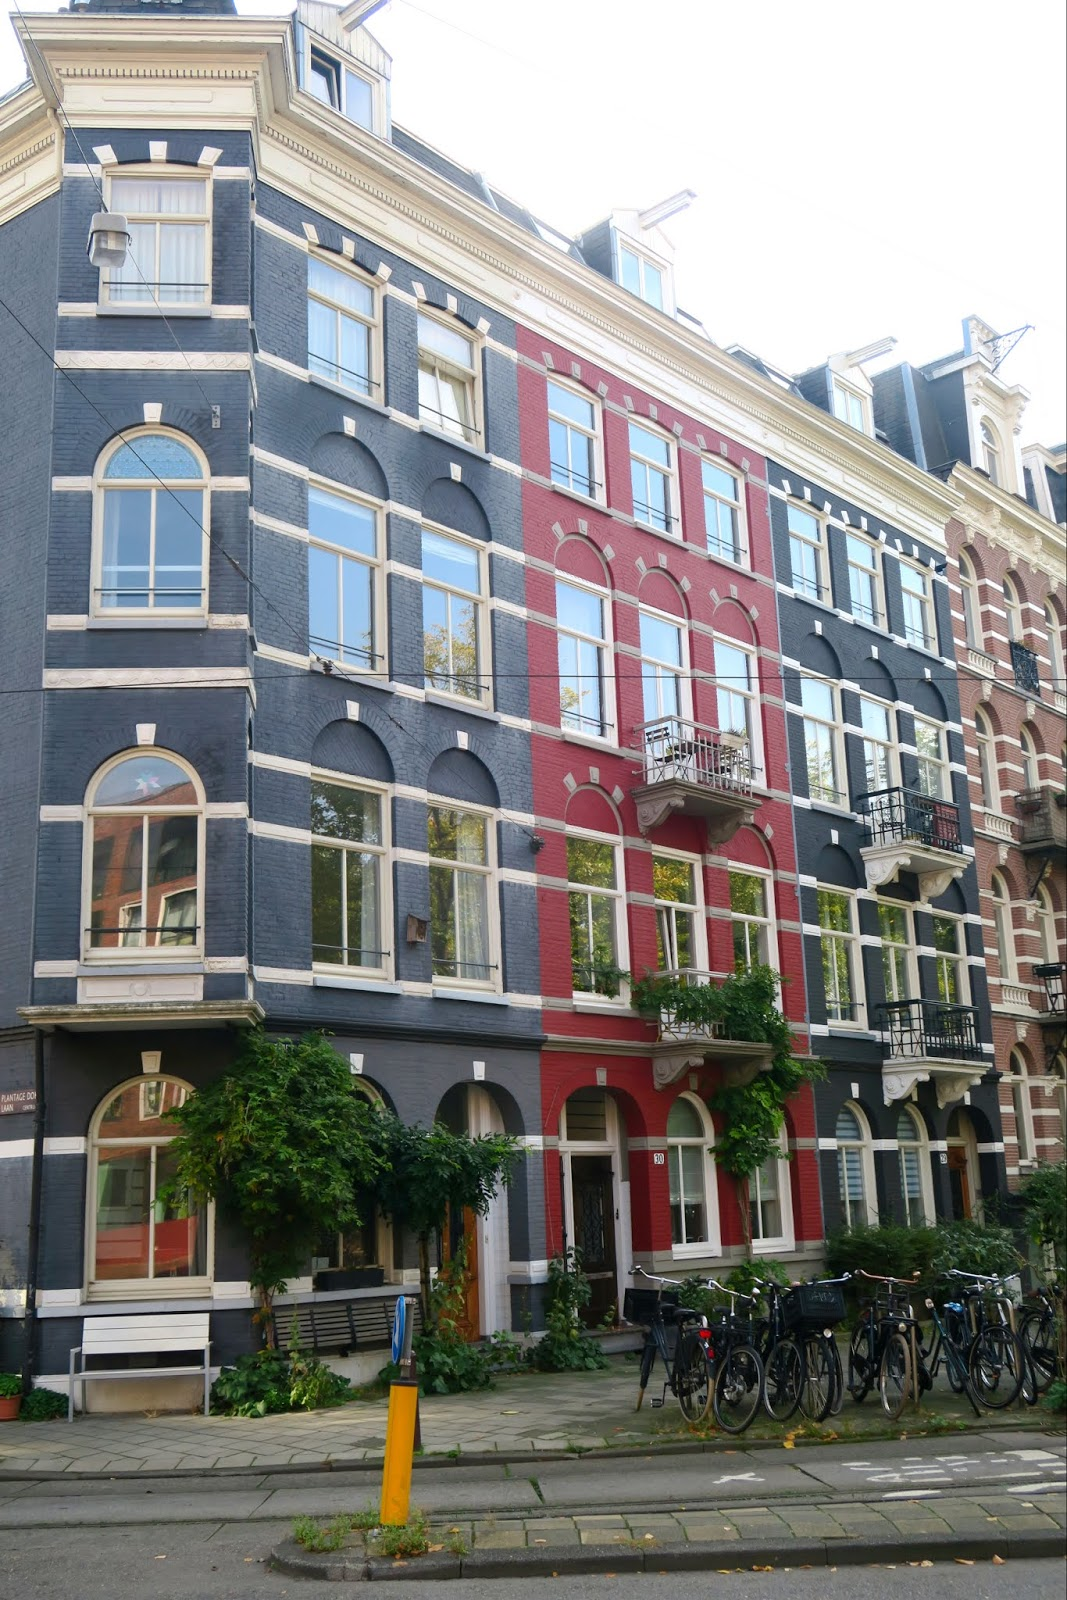 Amsterdam colourful buildings